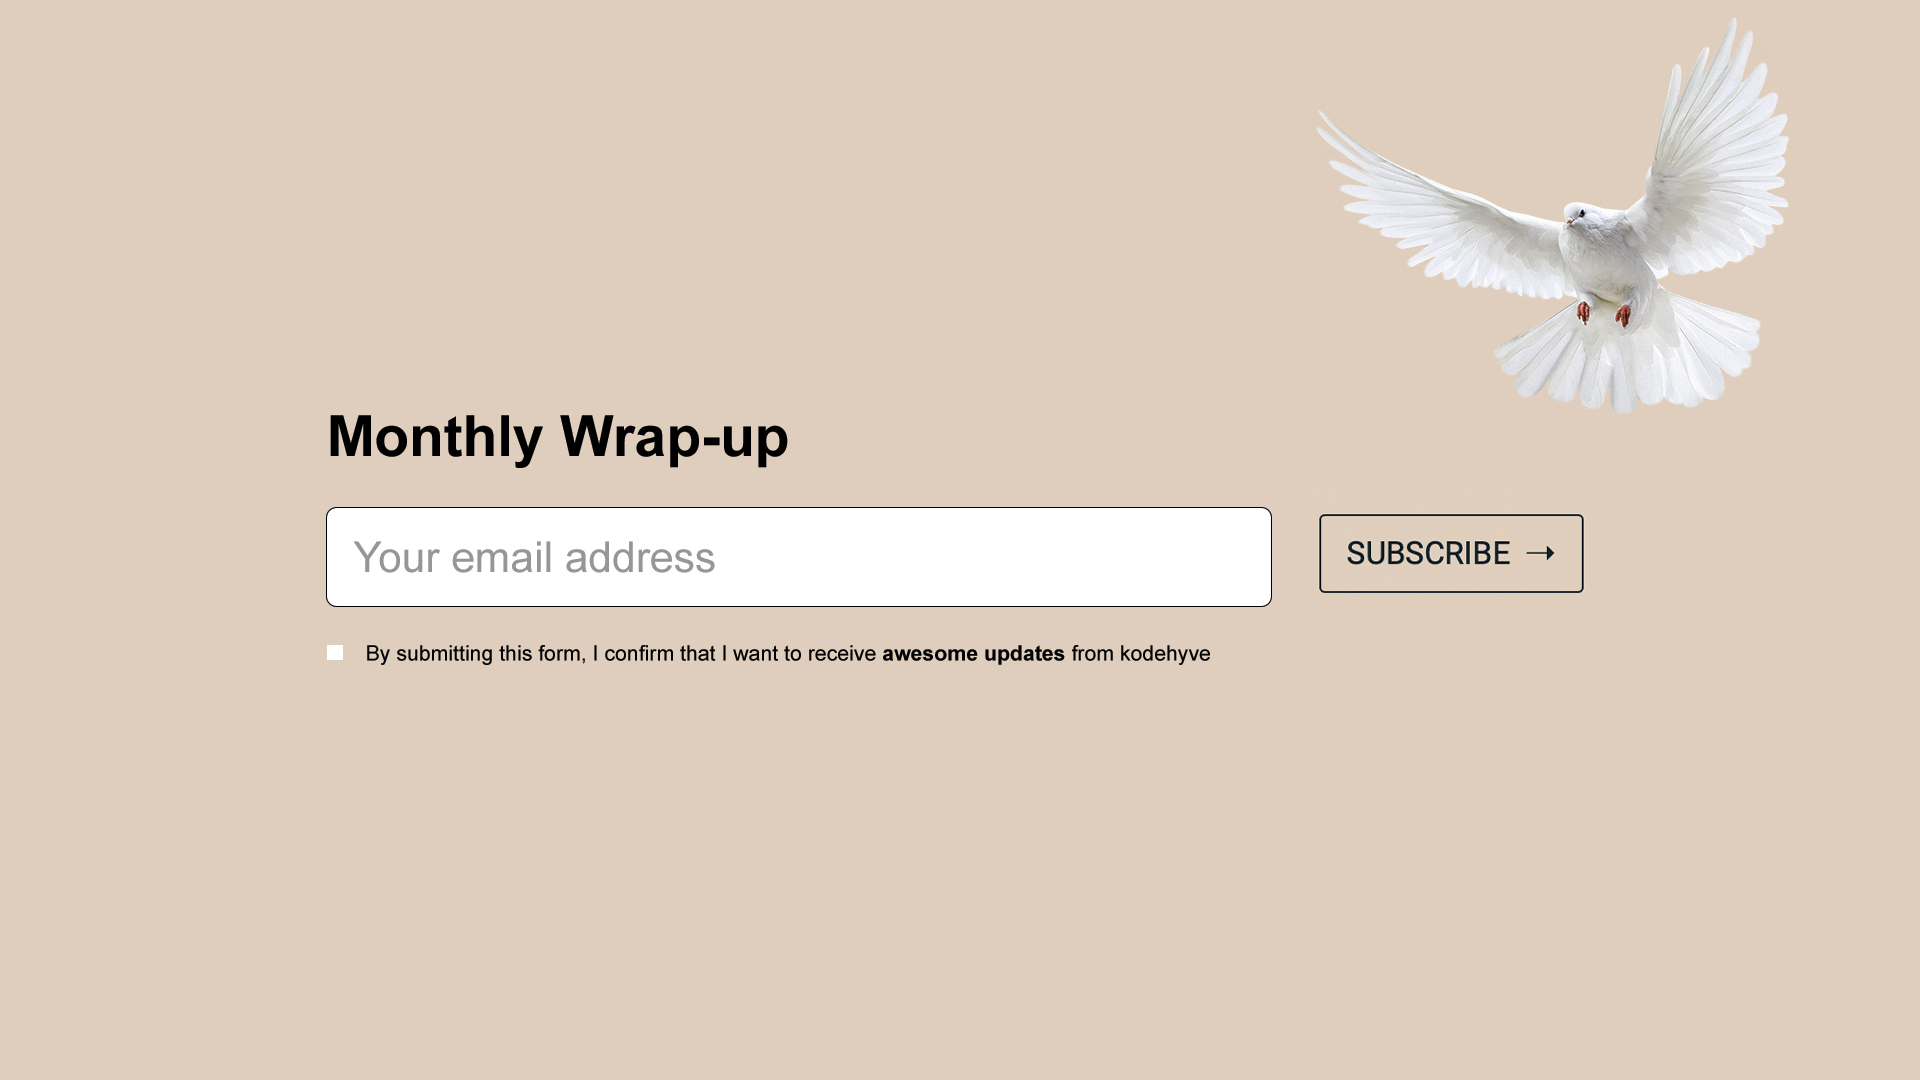 Monthly wrap-up newsletter